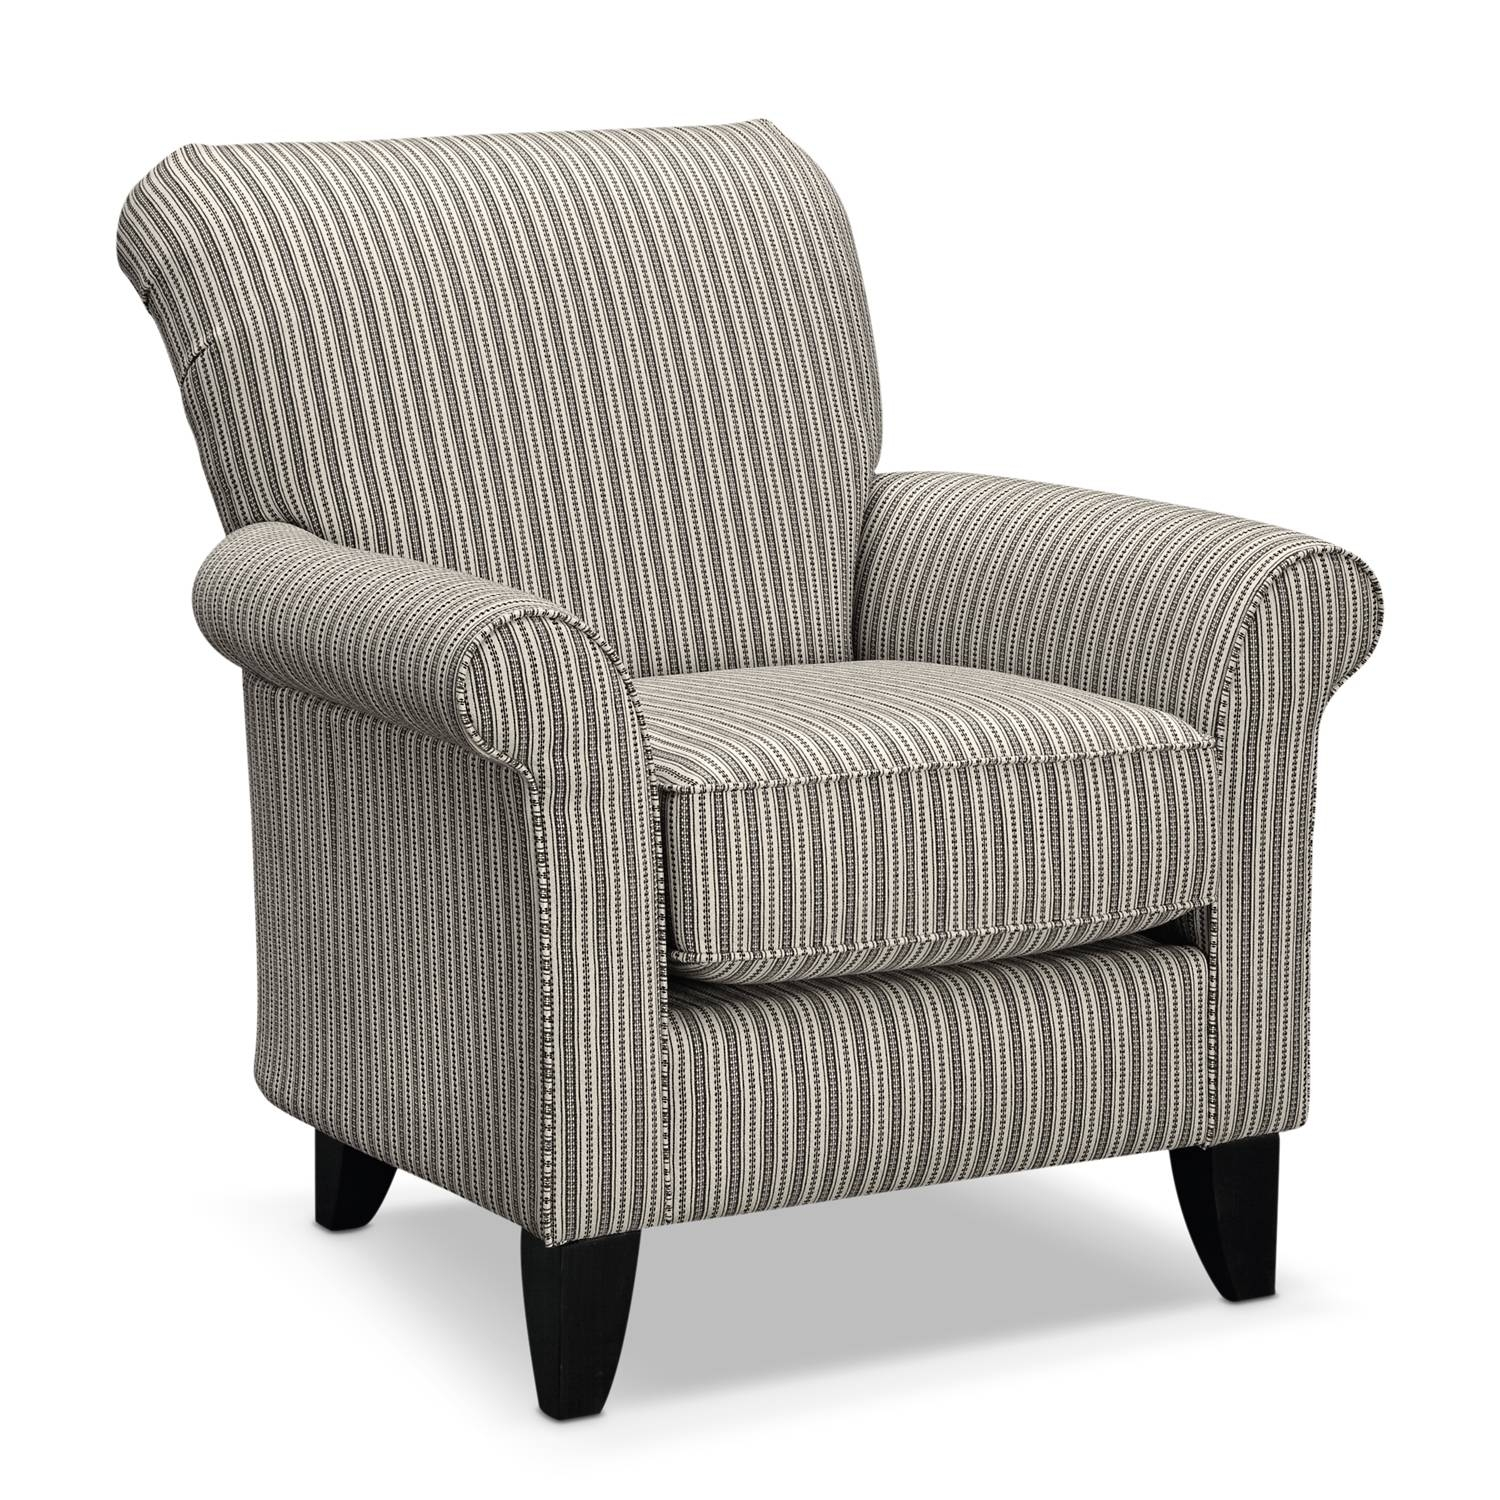 small armchairs for bedrooms best 30 of small armchairs small spaces 17092